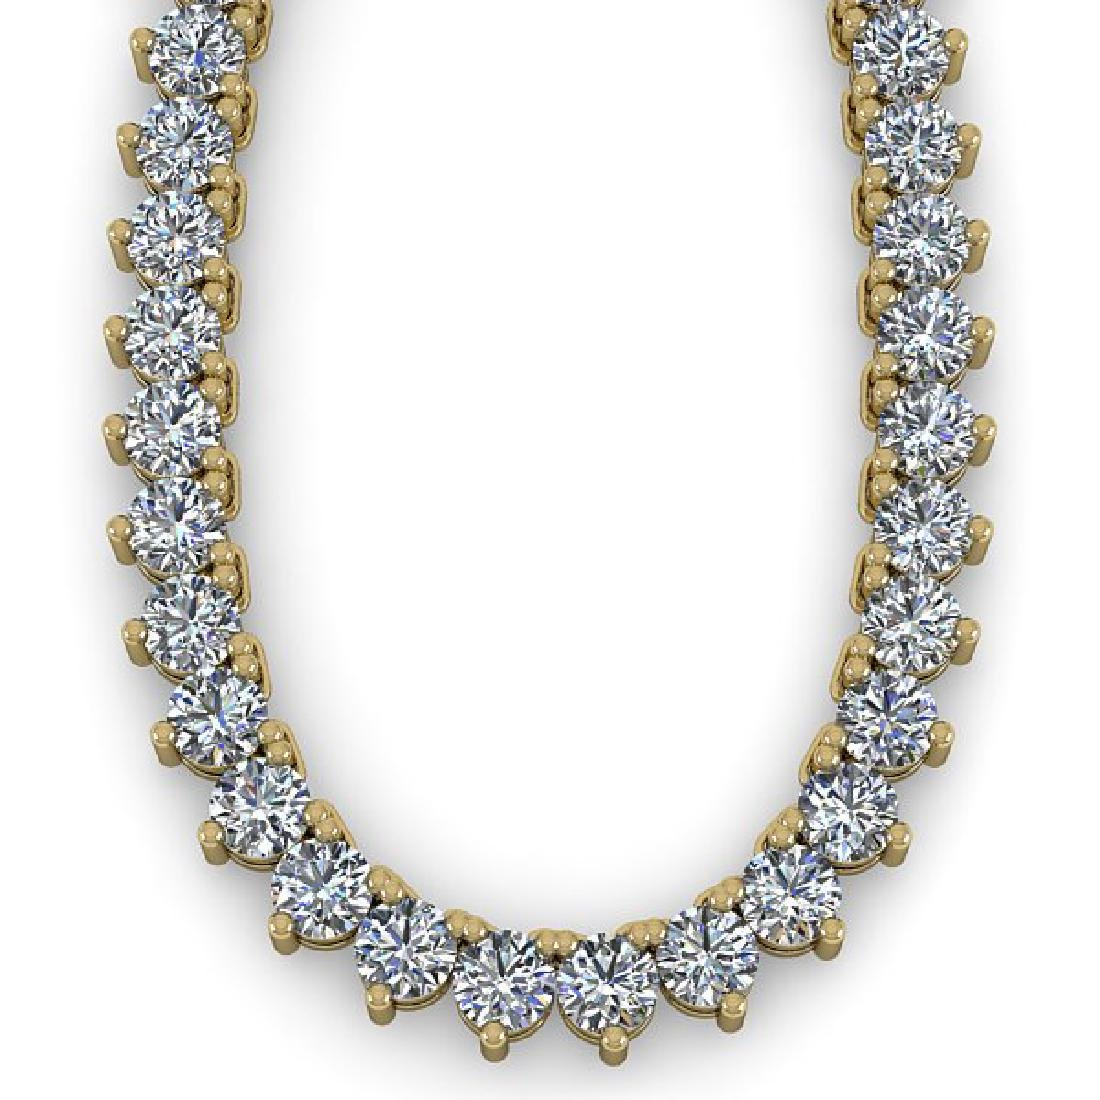 20 CTW Solitaire VS/SI Diamond Necklace 14K Yellow Gold